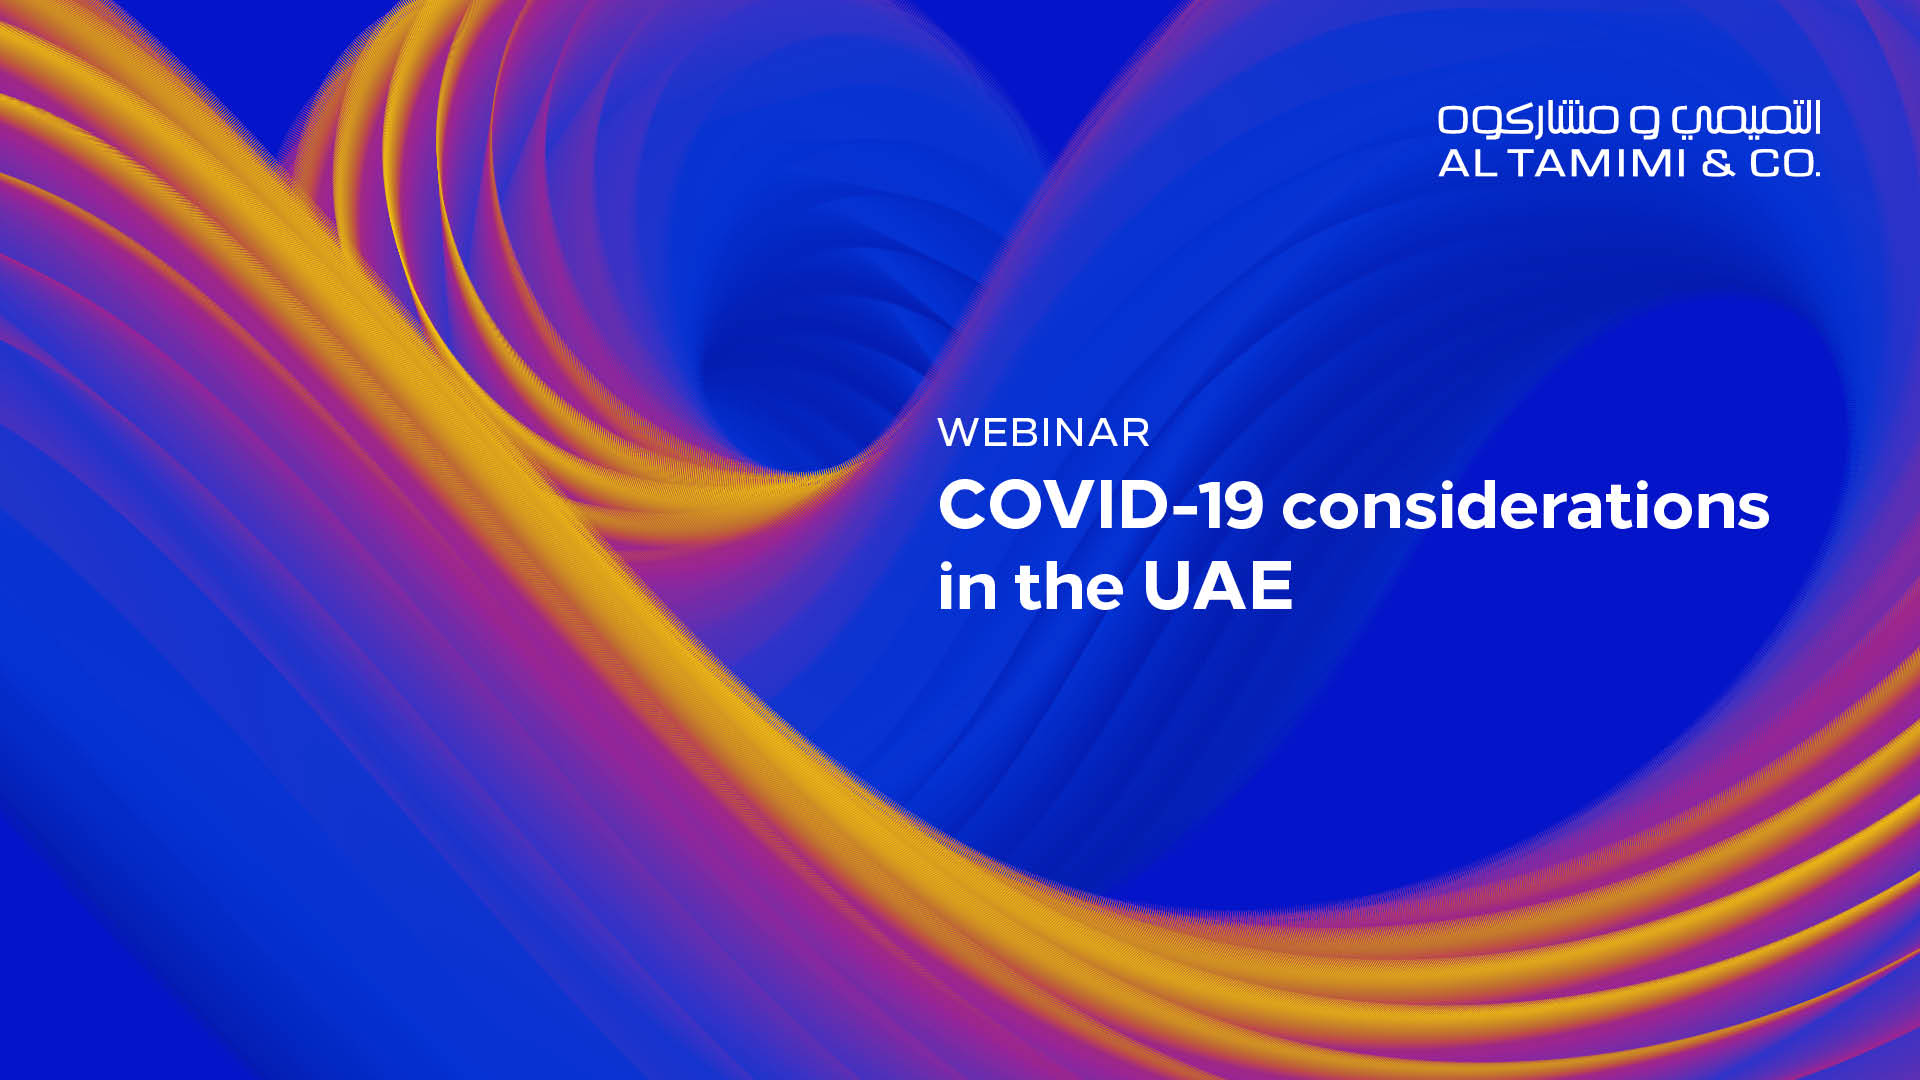 UAE COVID-19 Employment and Data issues